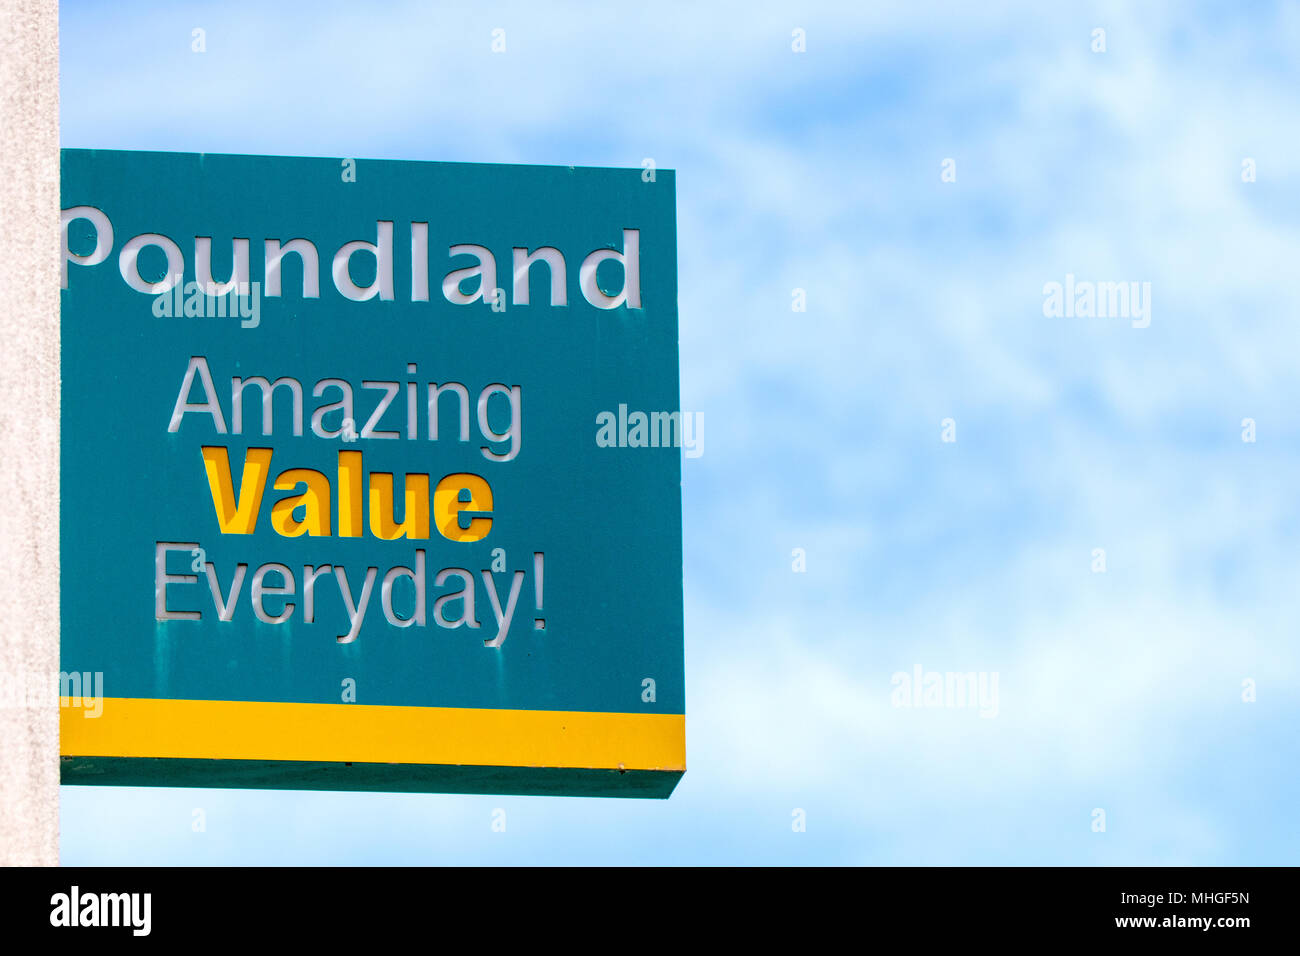 high street retail chain Poundland discount store signs - Stock Image